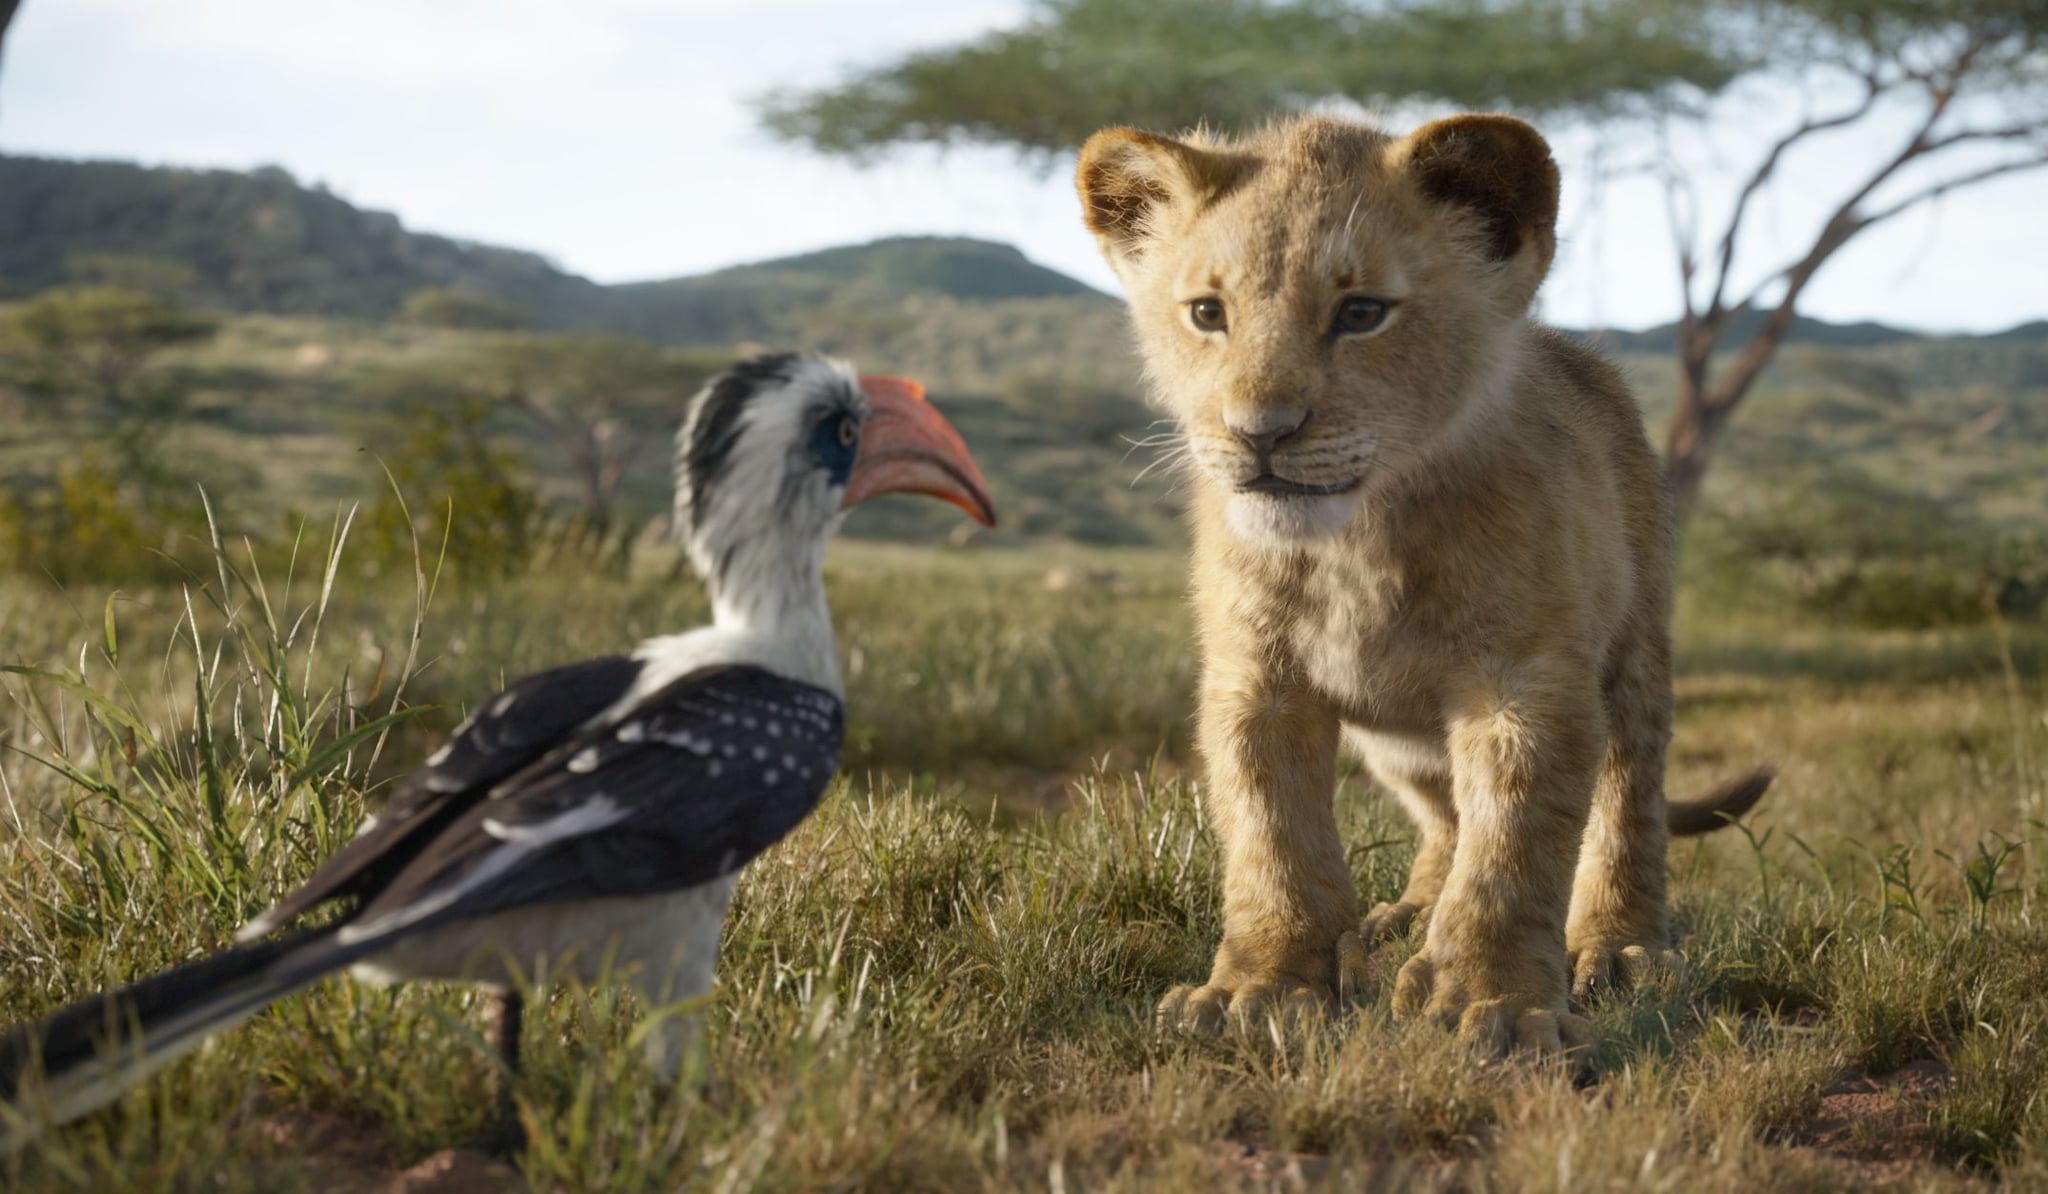 THE LION KING - Featuring the voices of John Oliver as Zazu, and JD McCrary as Young Simba, Disney's